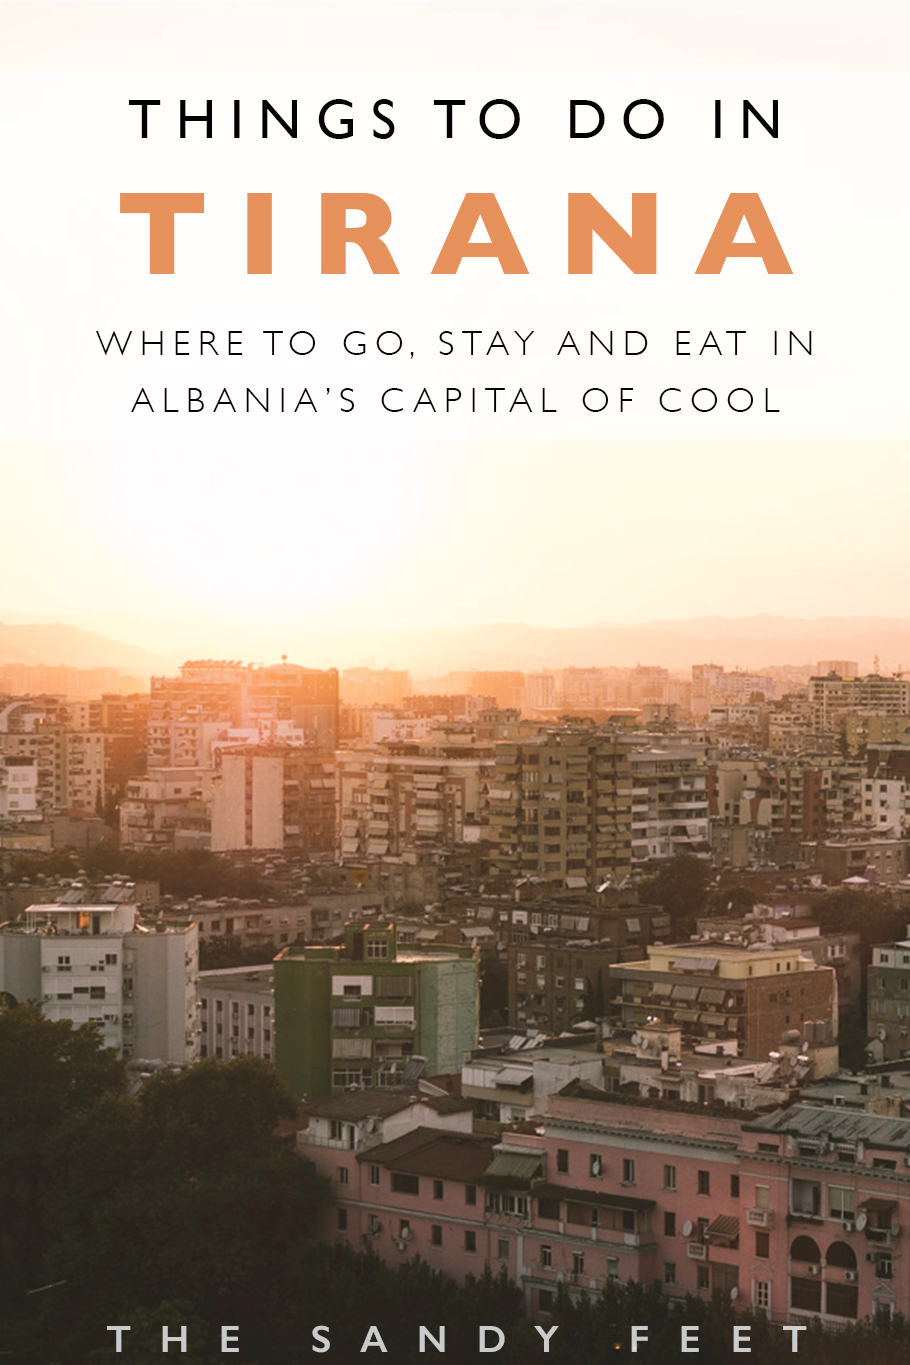 The Best Things To Do In Tirana : Where To Go, Stay And Eat In Albania's Capital Of Cool.